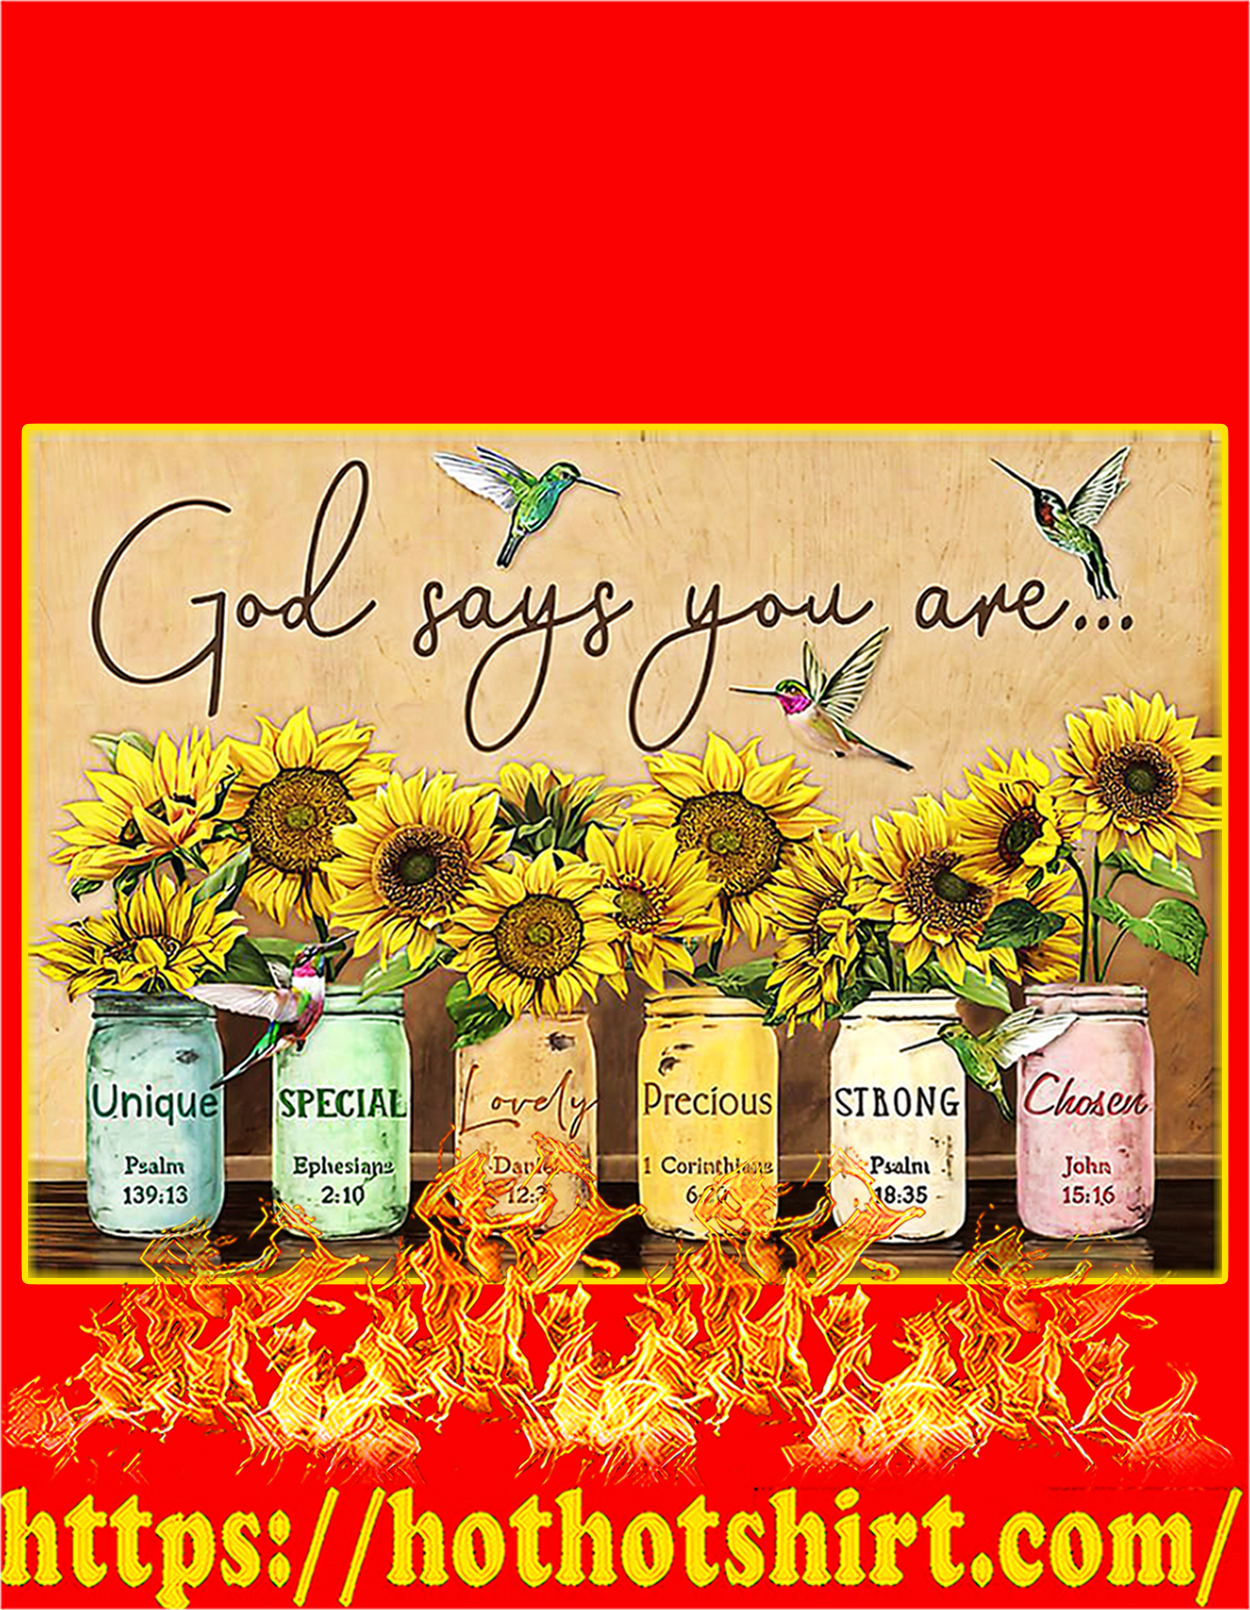 God says you are poster - A3